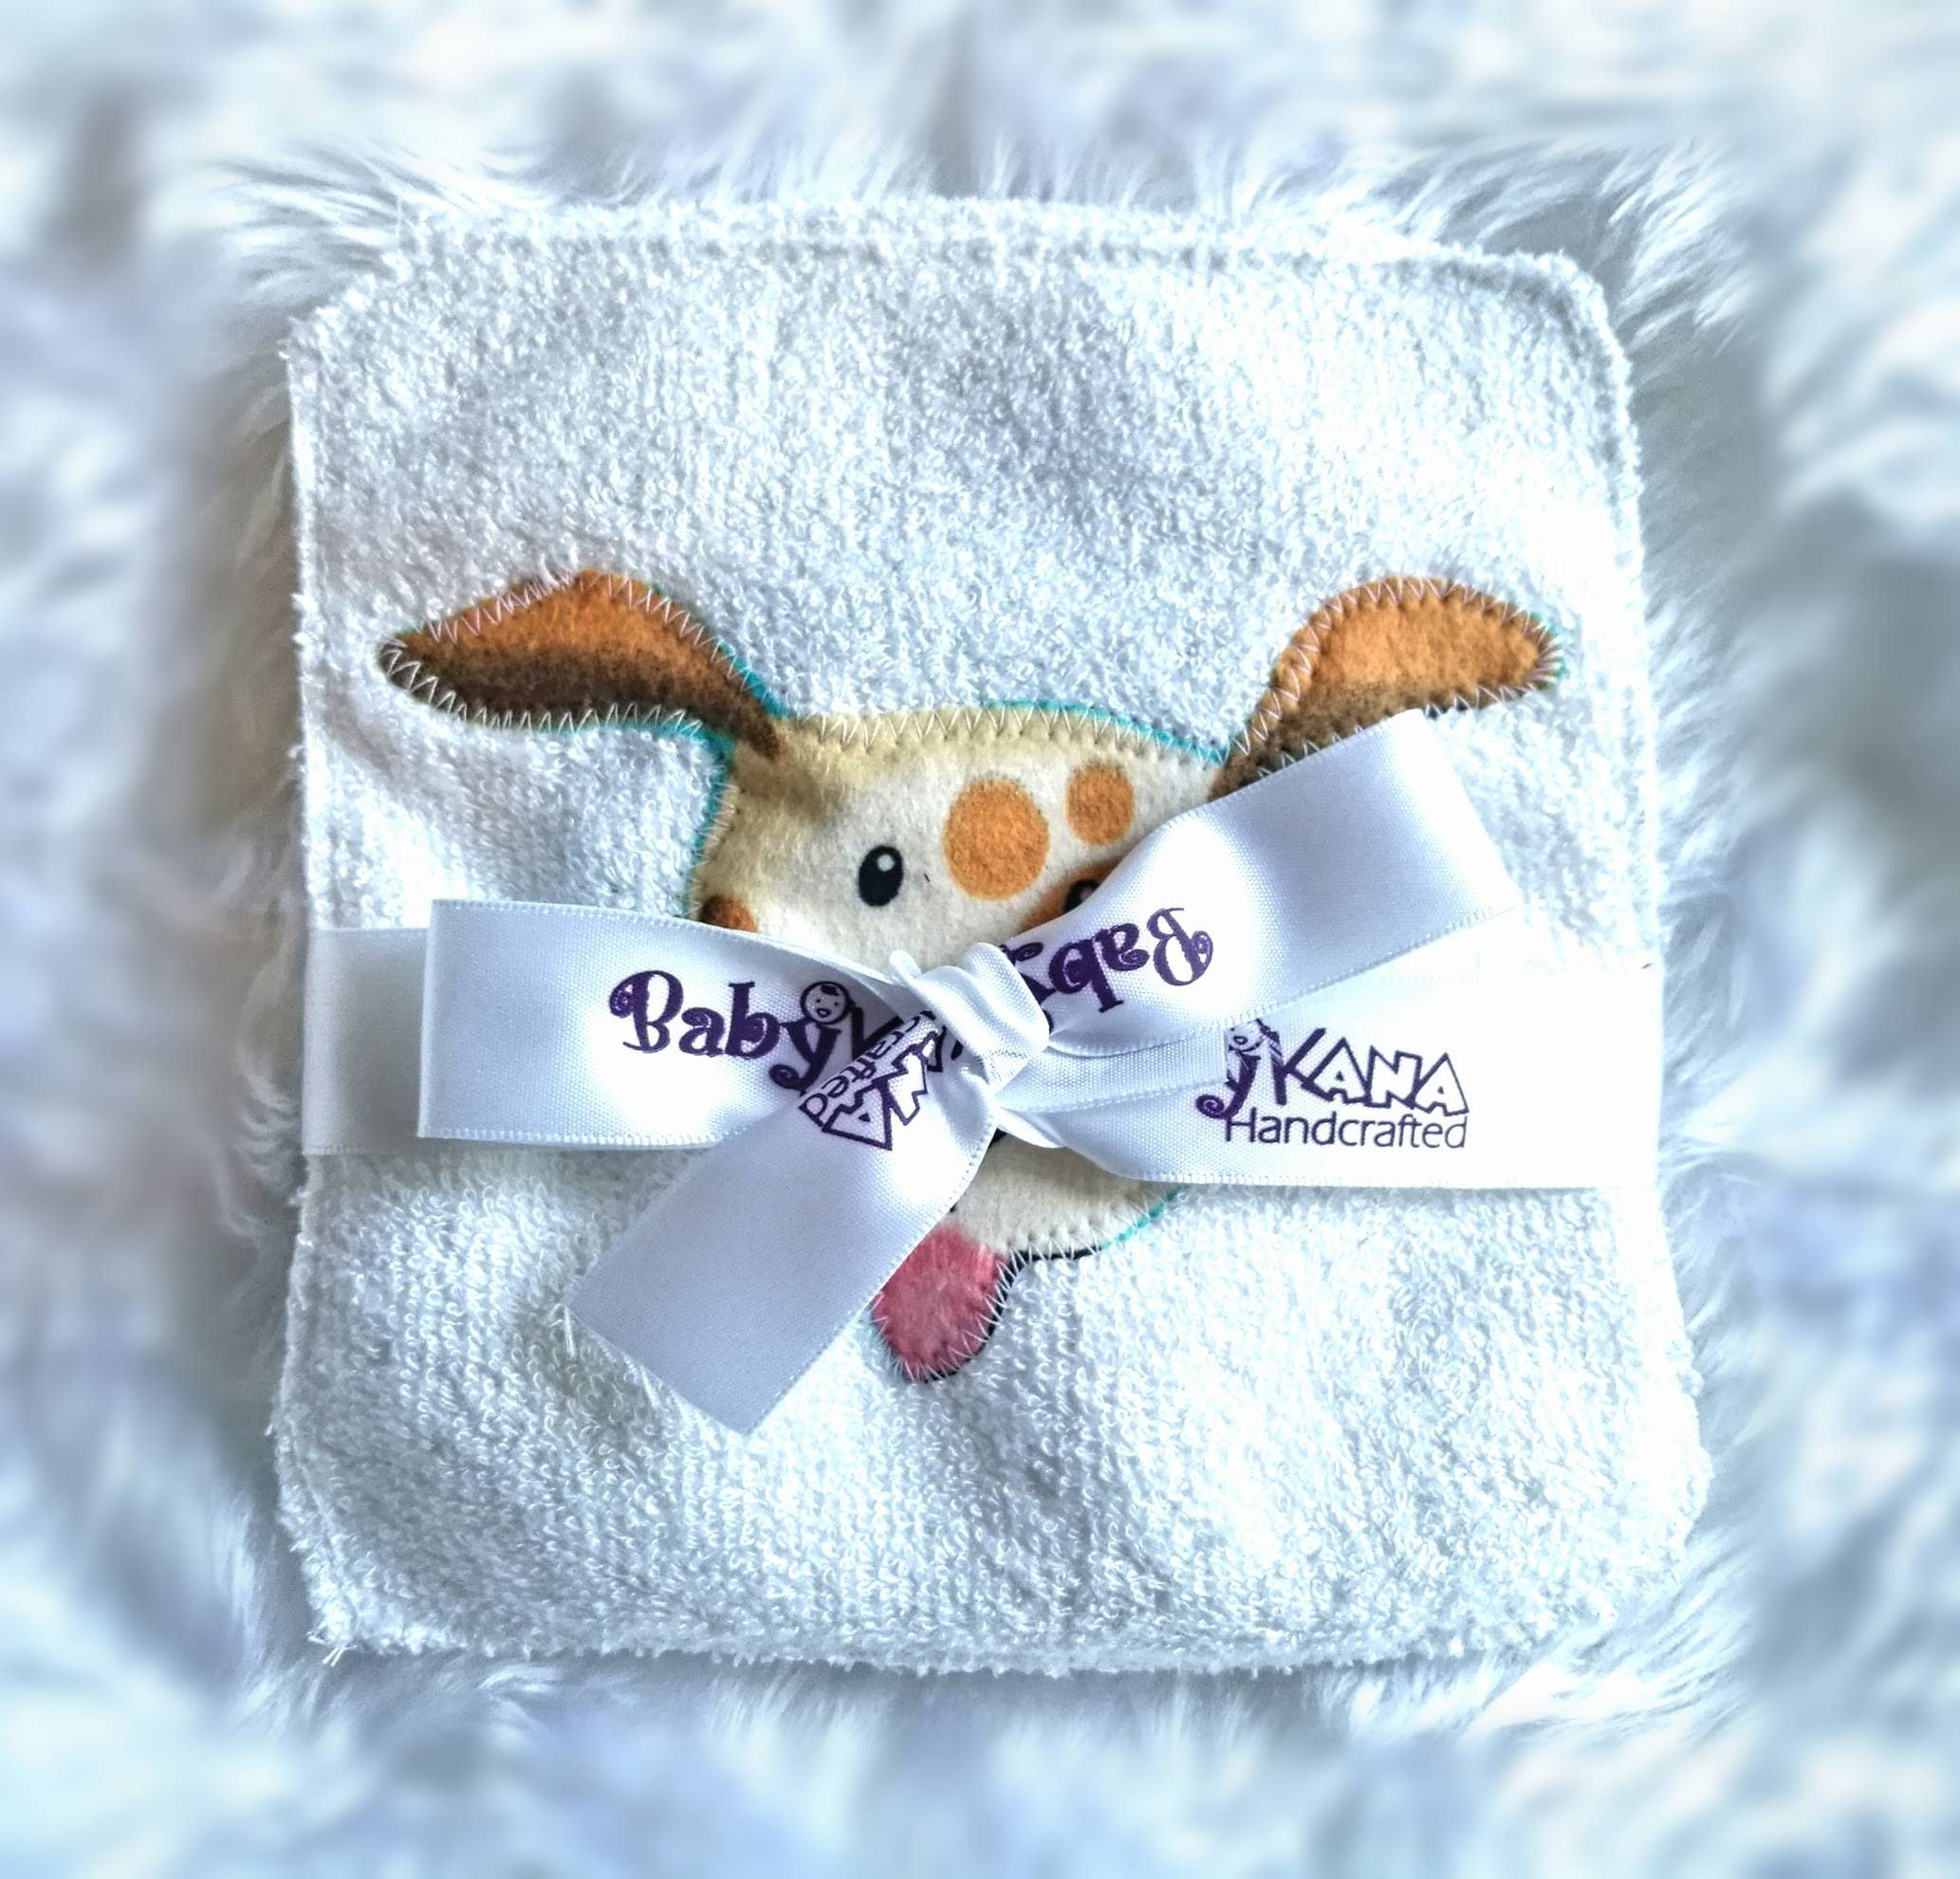 Reusable wipes washable wipes Bamboo Terry wipes burp cloth